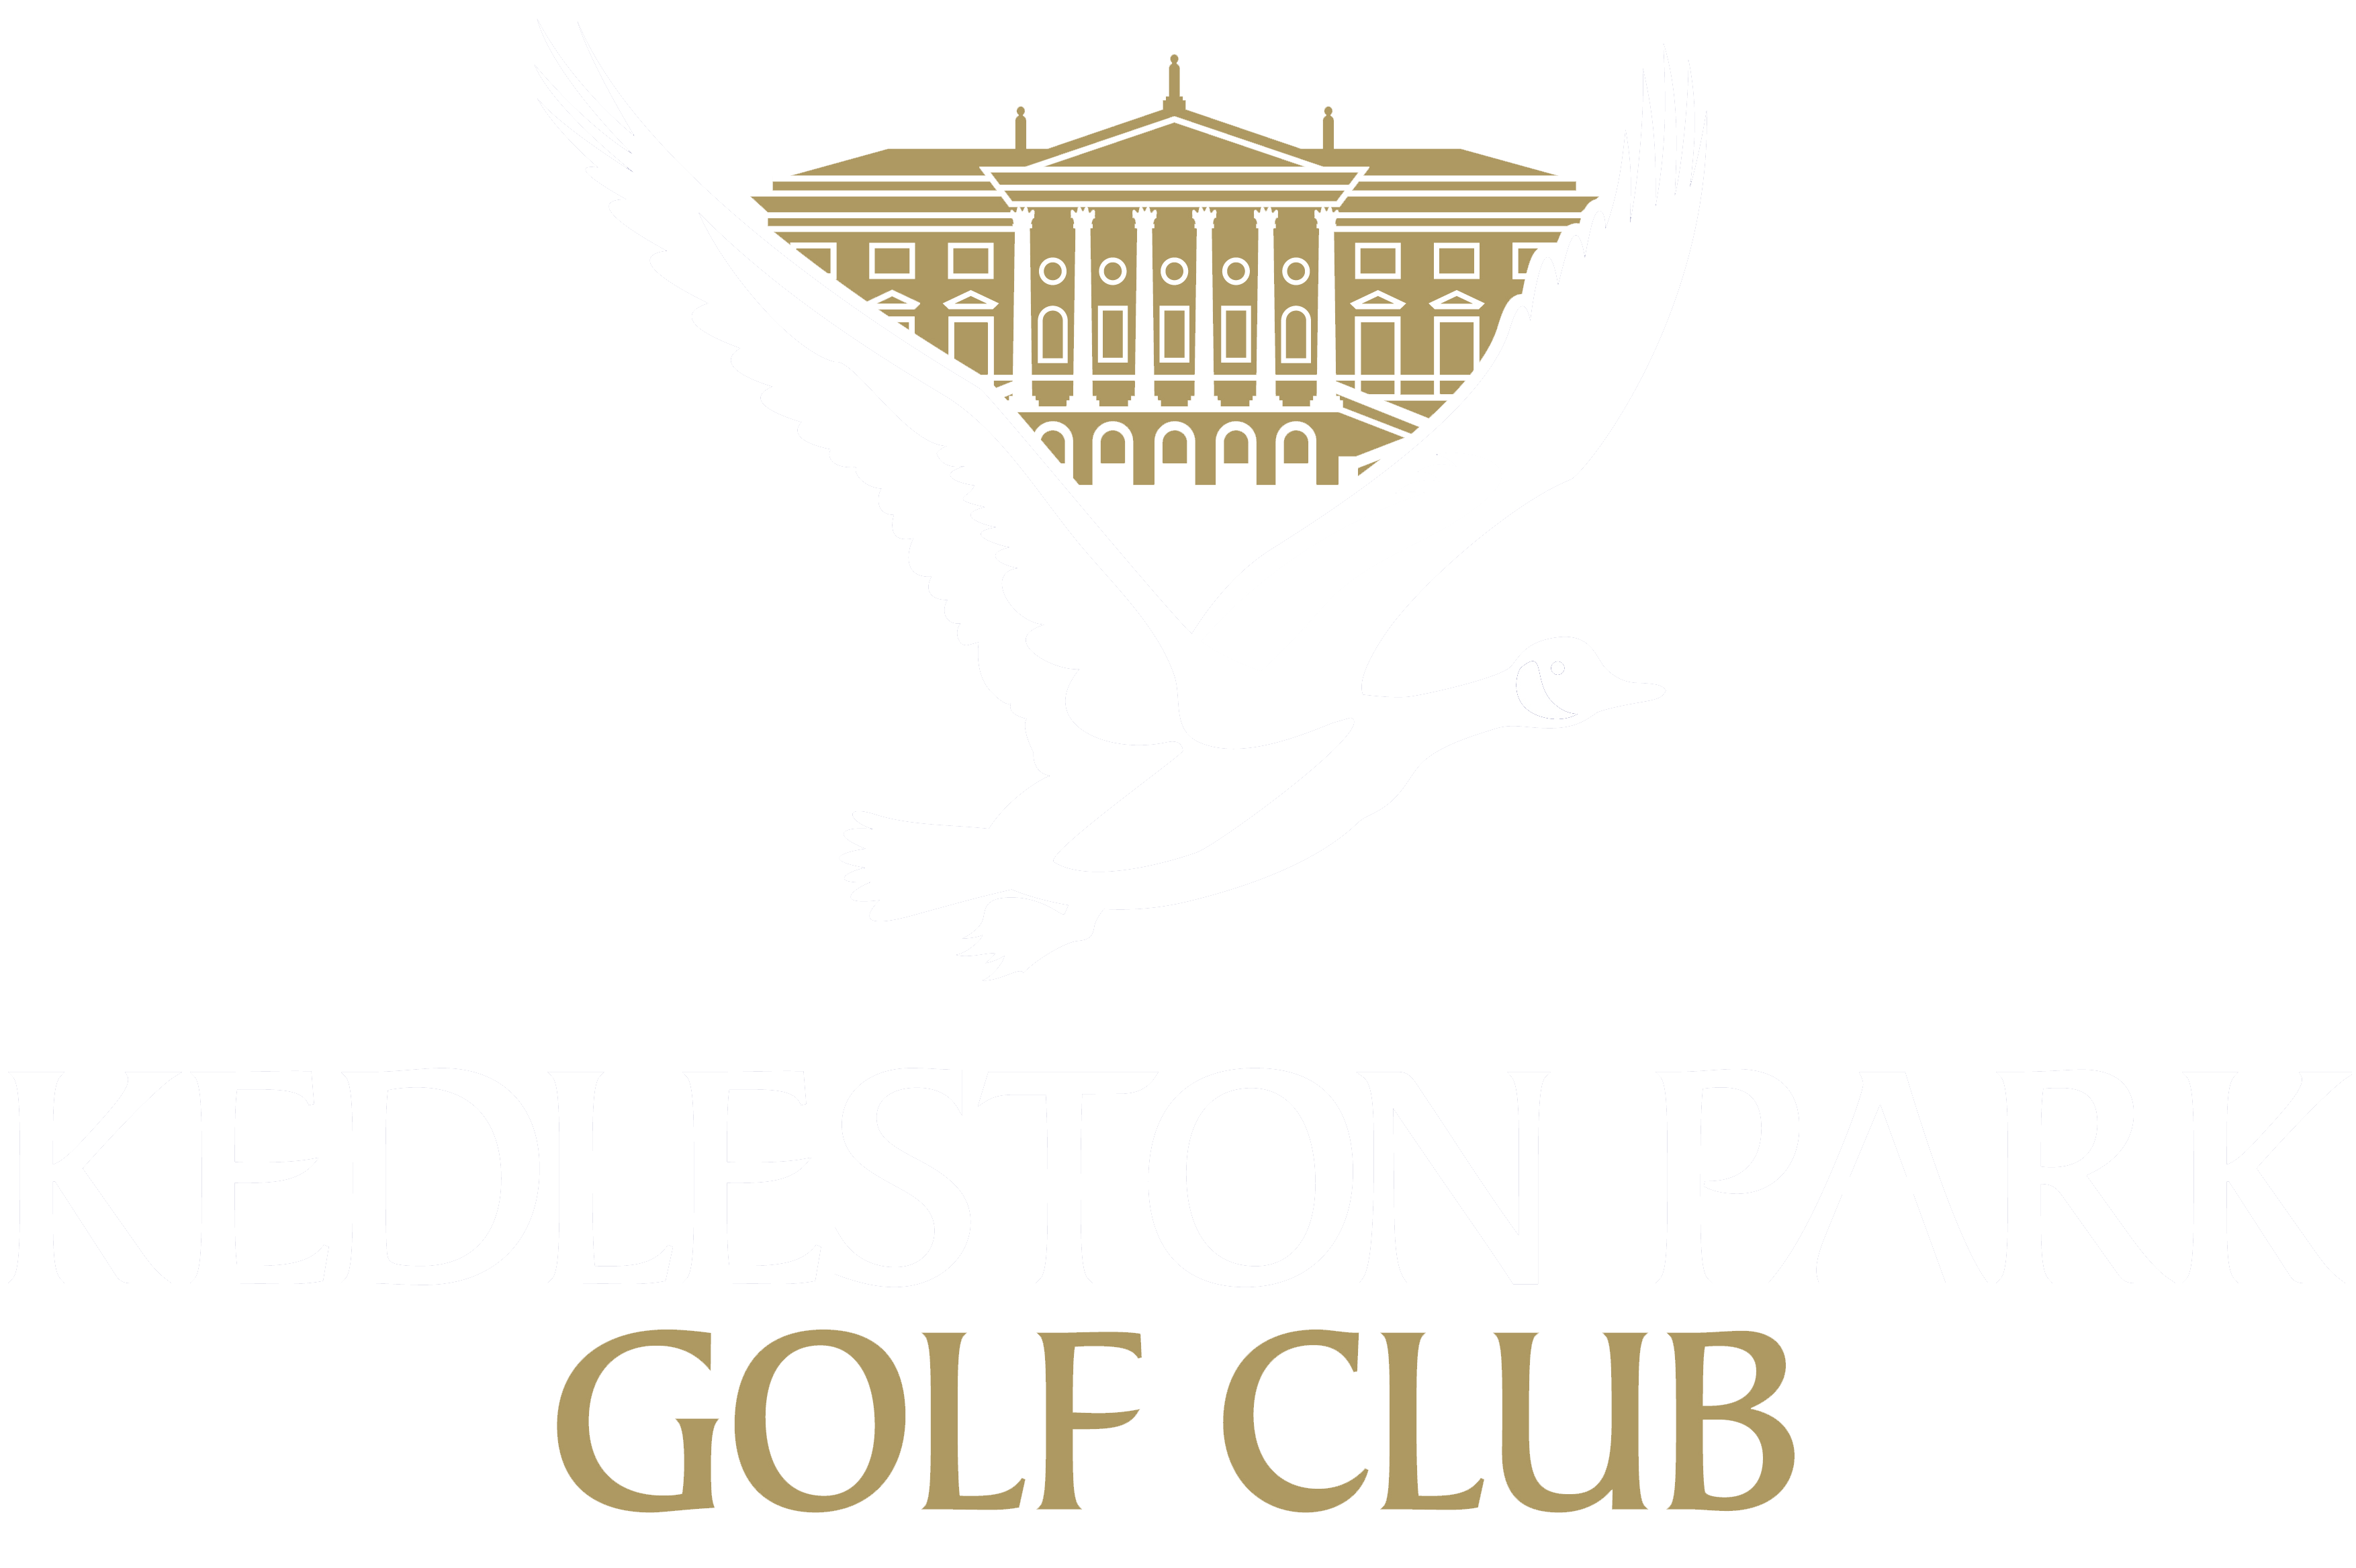 Kedleston Park Golf Club